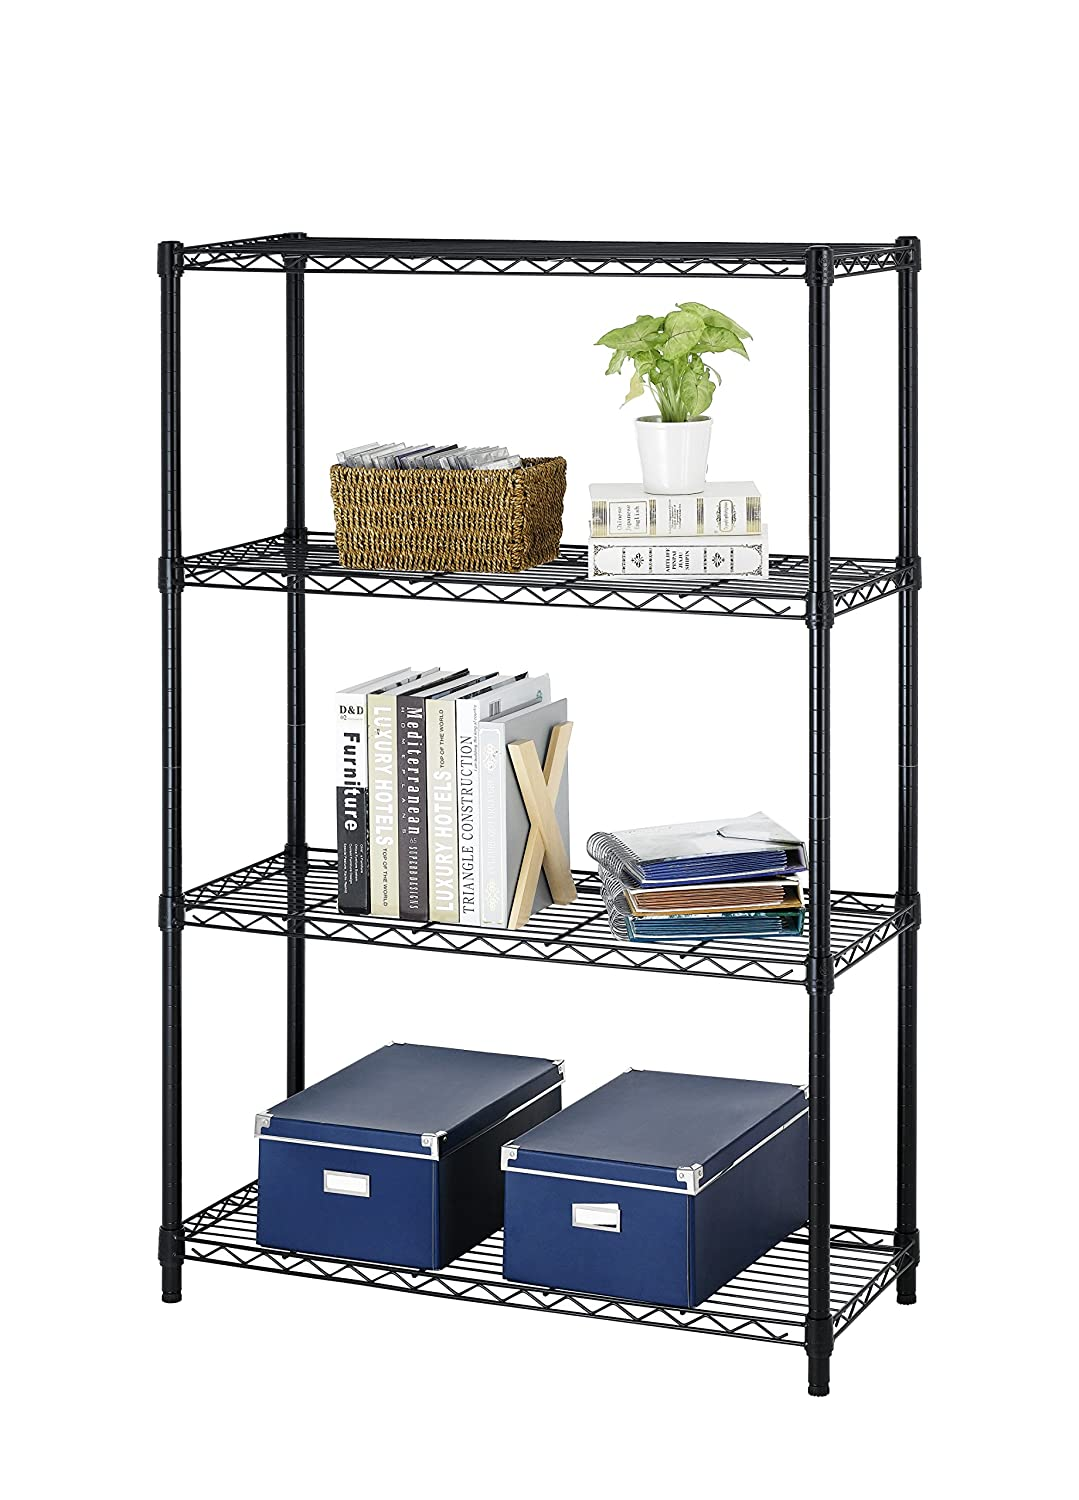 New Black Storage Rack 4-Tier Organizer Kitchen Shelving Steel Wire Shelves Cart